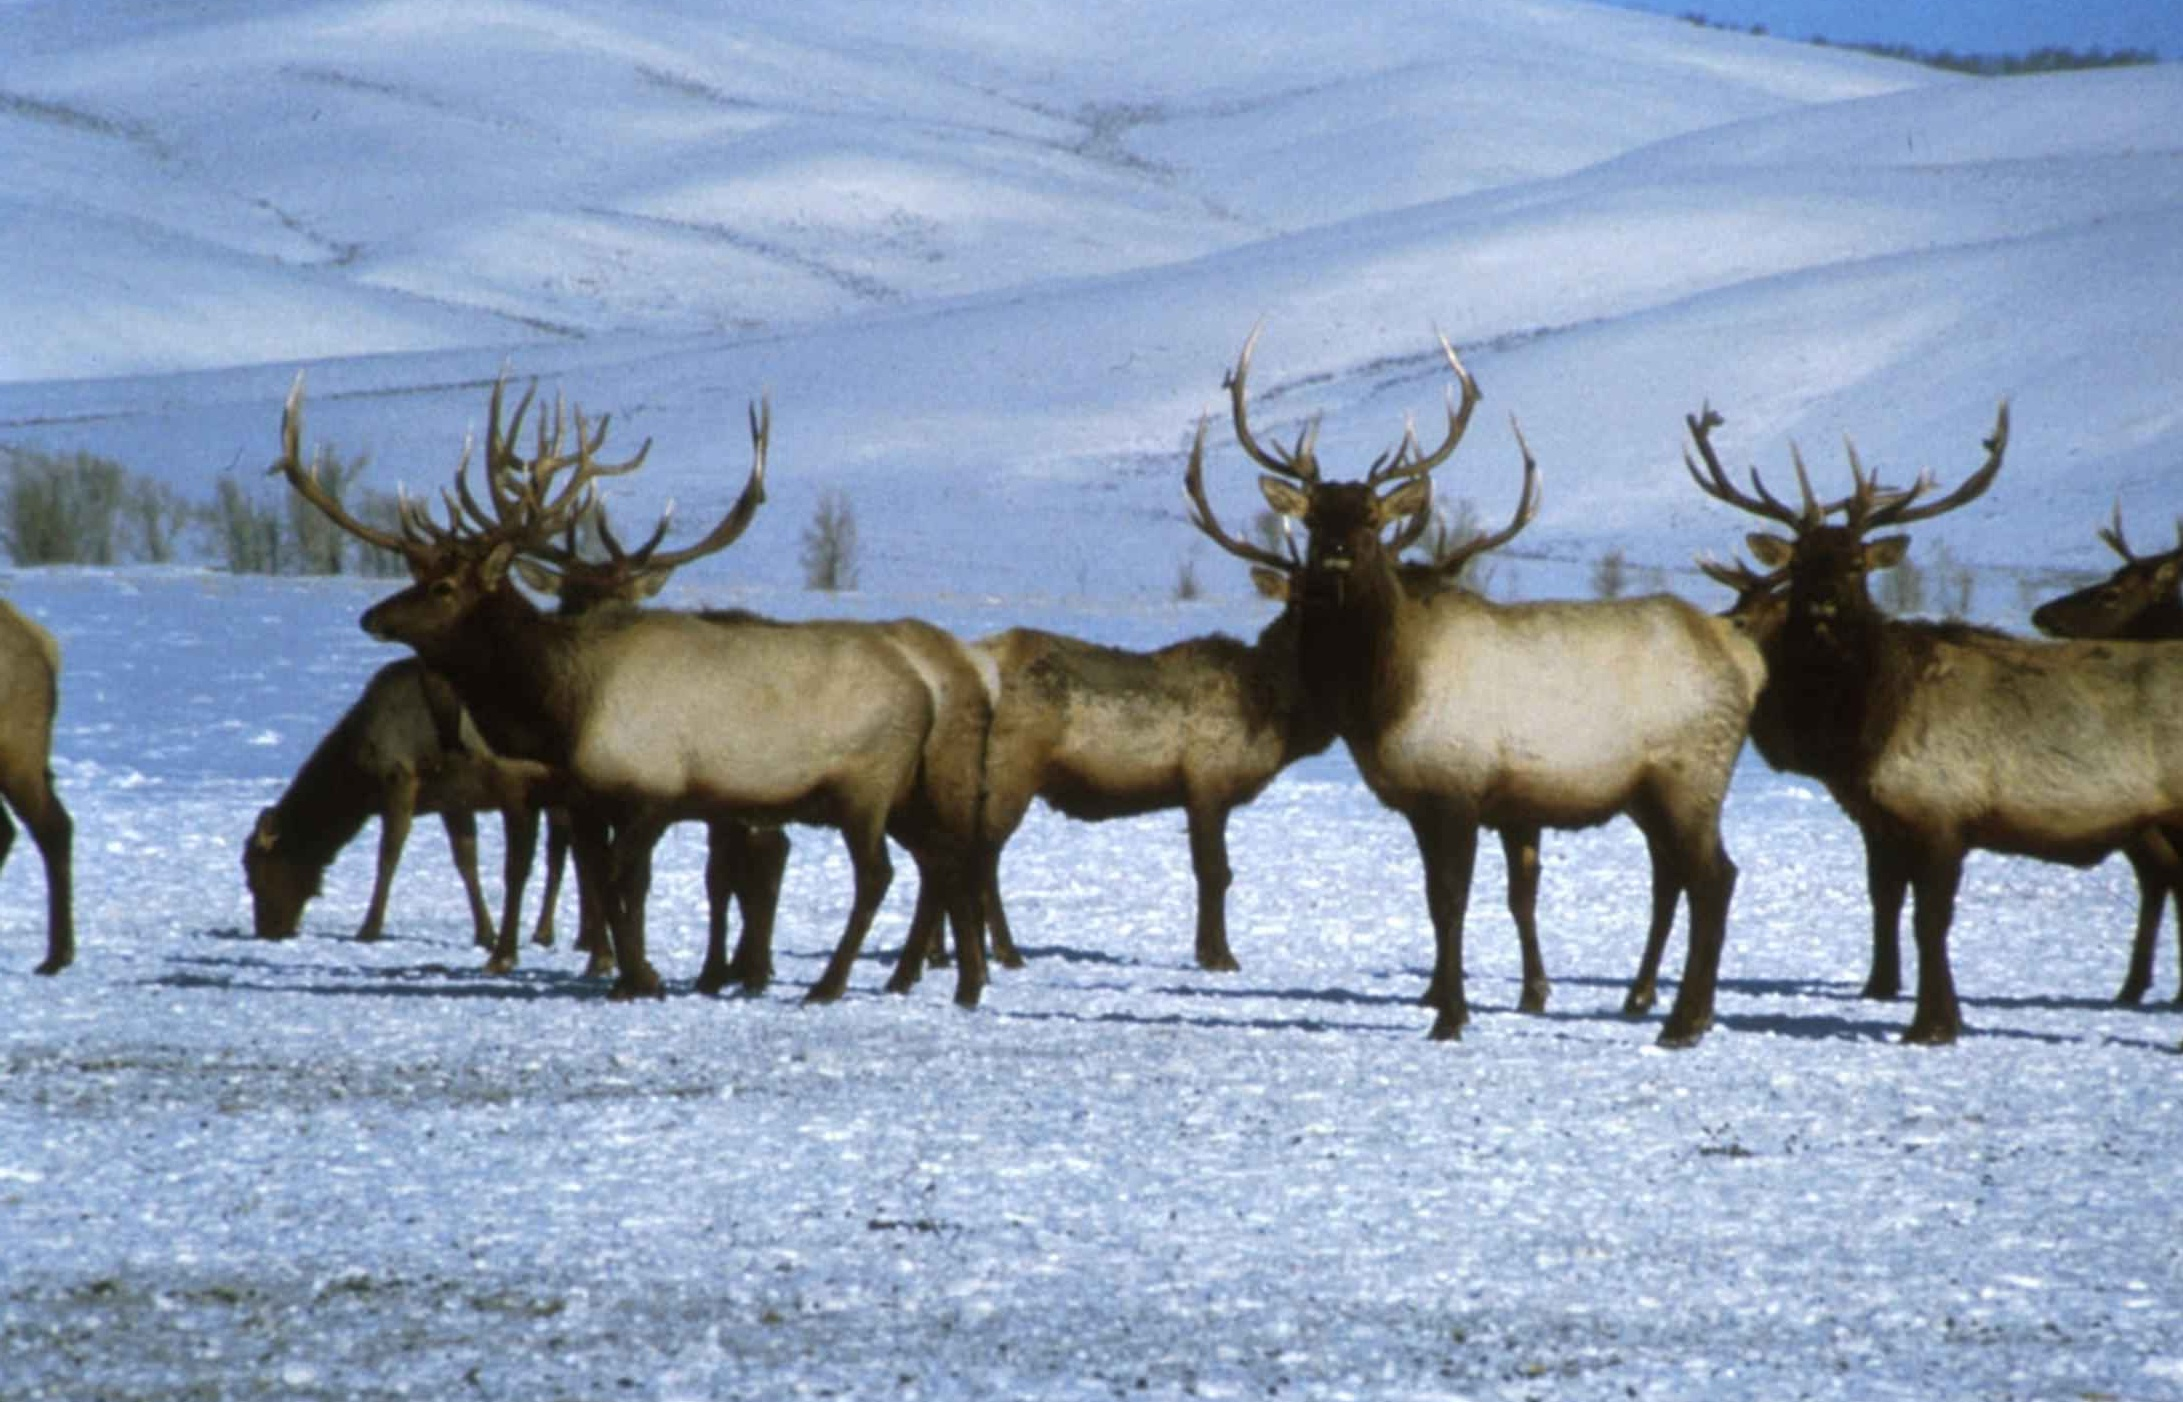 Bull elks on snow royalty free stock picture is in public domain .